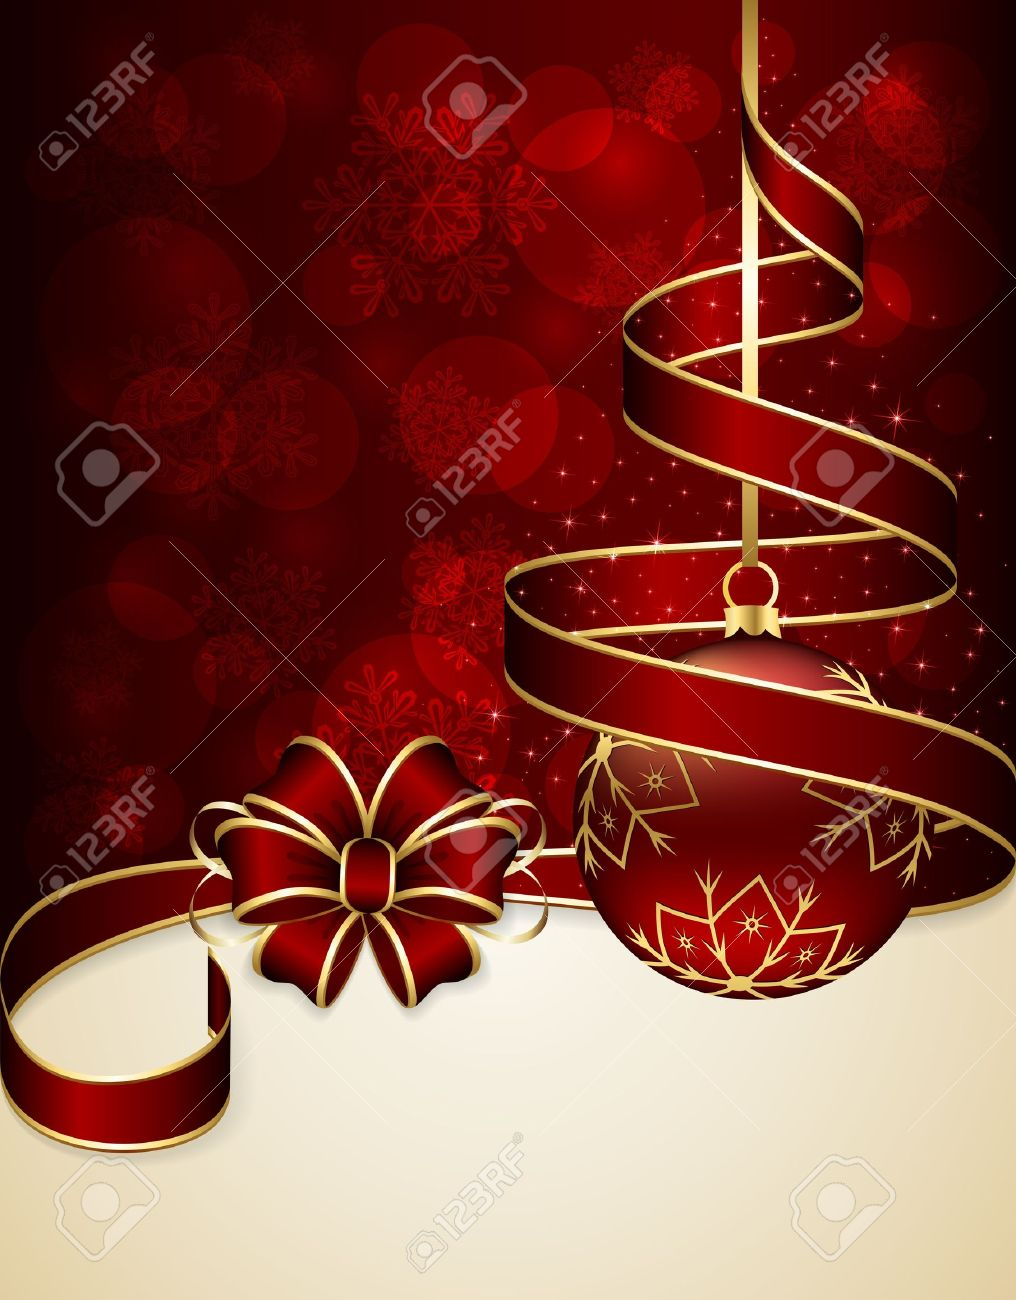 Red Christmas background with ribbon and bauble, illustration Stock Vector - 22011966